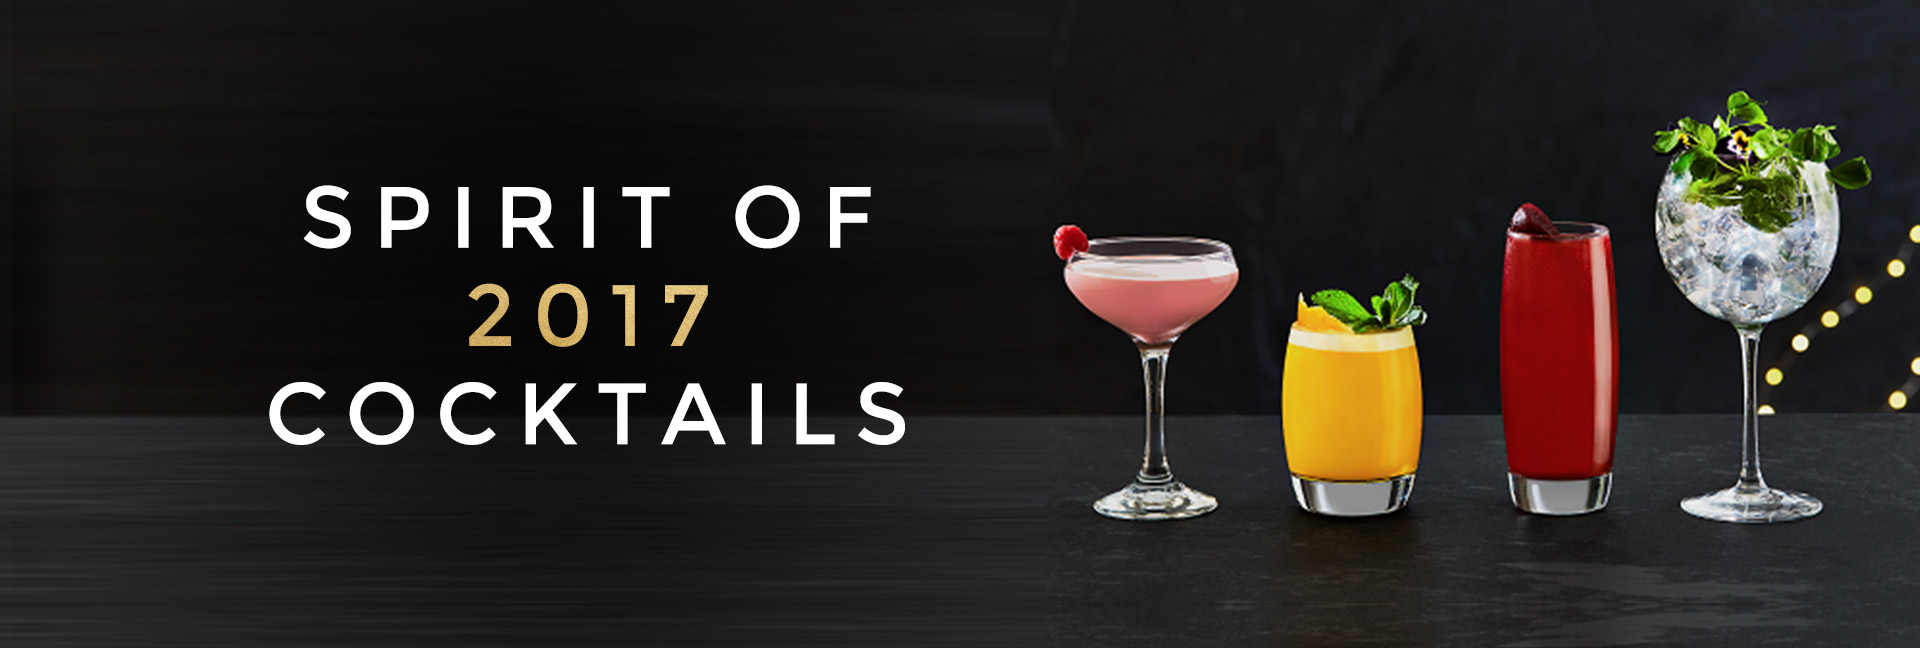 Spirit of 2017 cocktails at All Bar One Reading